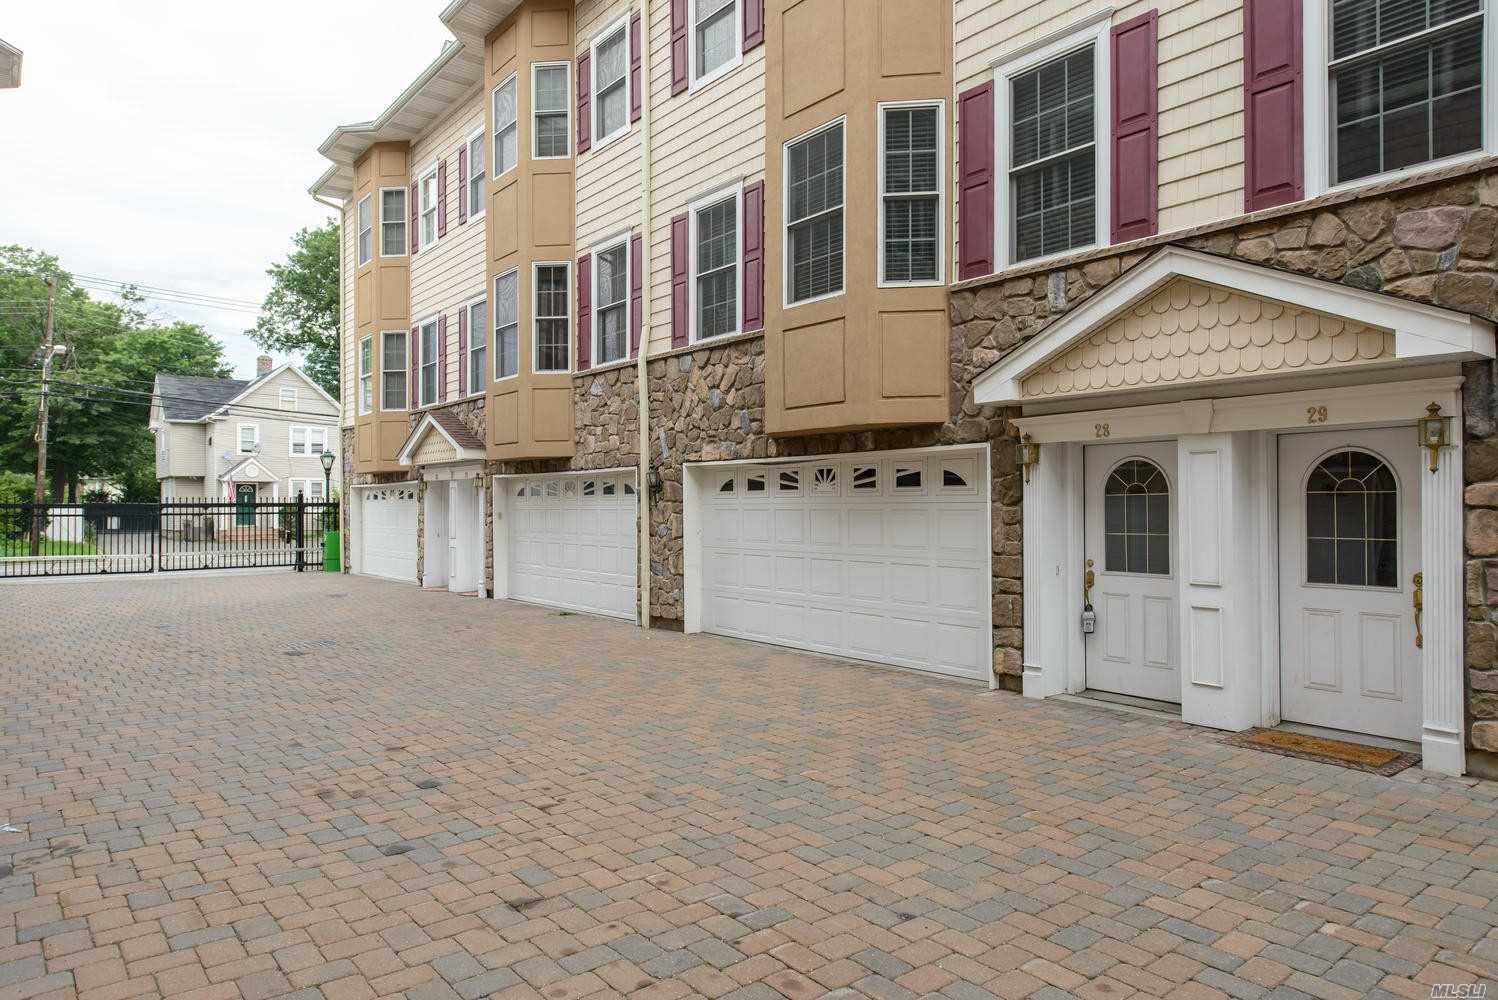 9 Year Young Gorgeous Townhouse Features 2 Bedrooms, 2 Bathrooms, 2 Car Garage, Large Living Room /Dining Room, Eat-In-Kitchen, All Open Floor Plan, 2 Large Bedroom With Vaulted Ceilings, Upgrades Throughout, Central Air, Gas Heat, Gated Community A Must See !!!!  Don't Miss This Opportunity !!